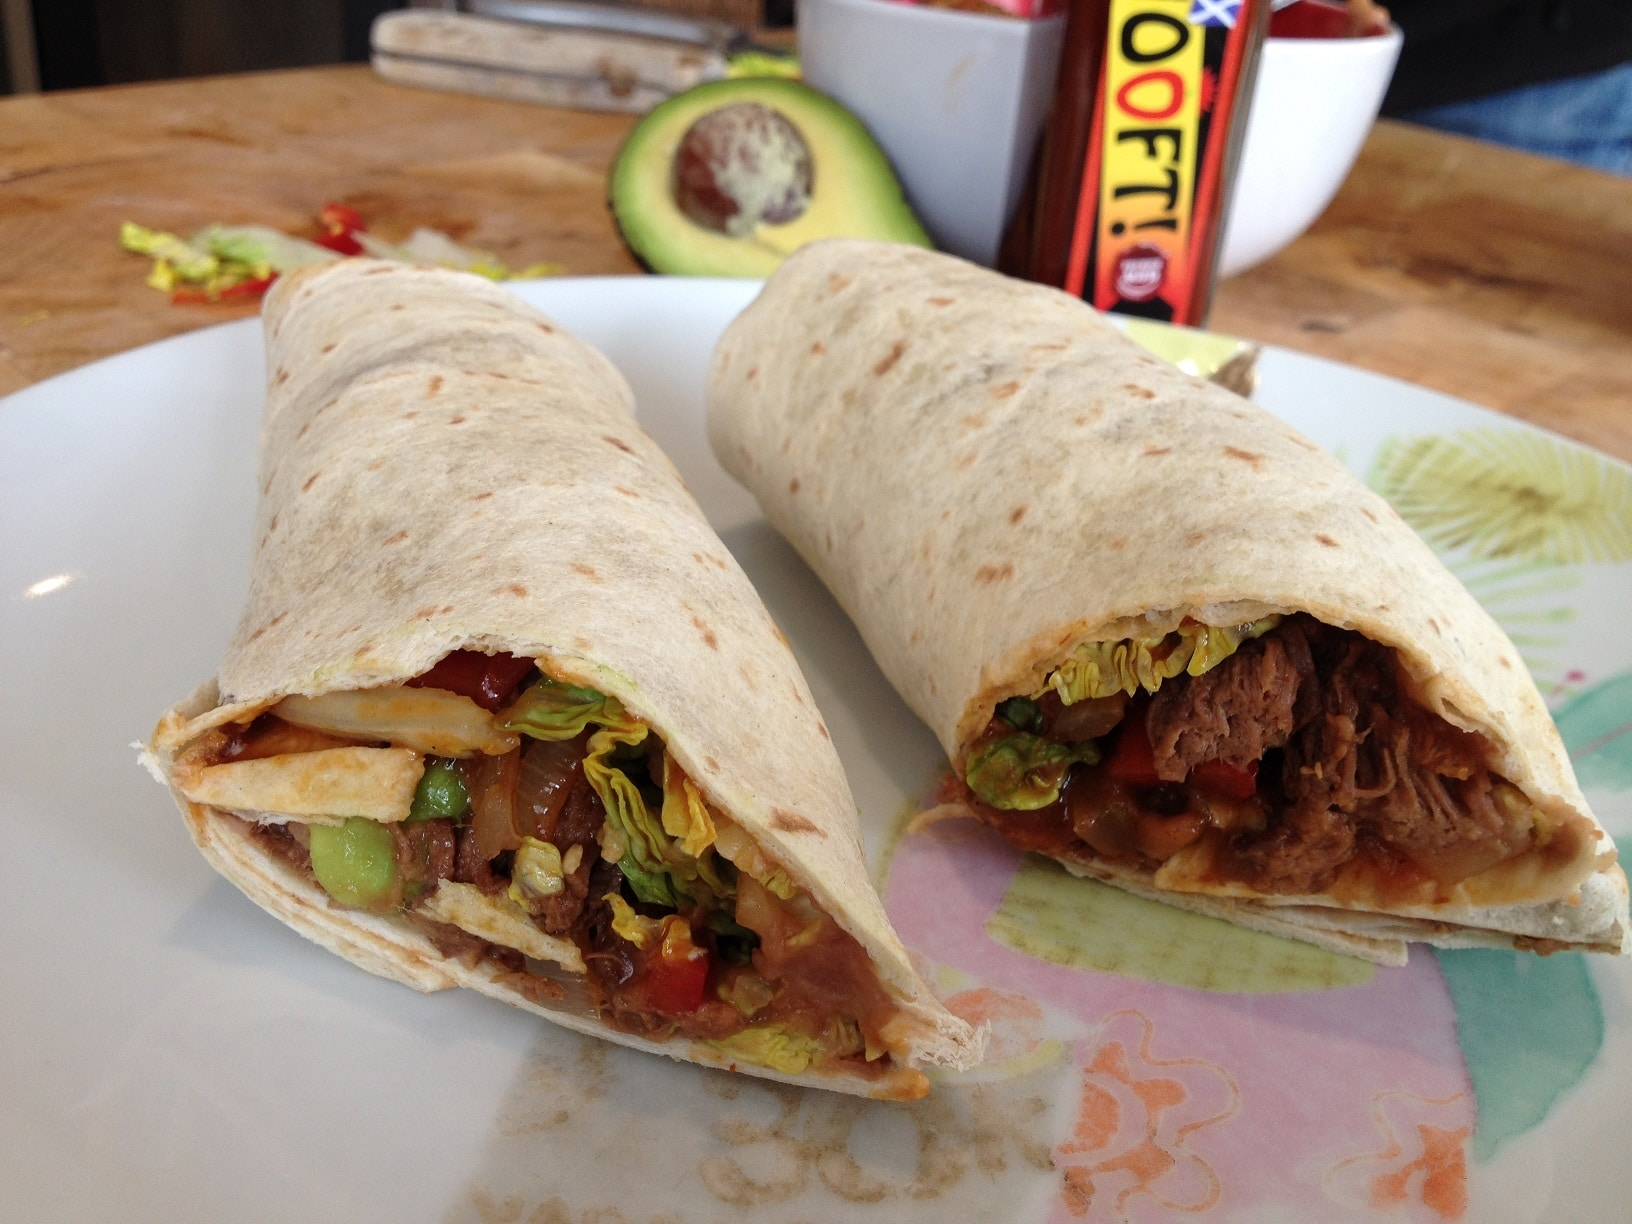 shredded beef tortilla wrap